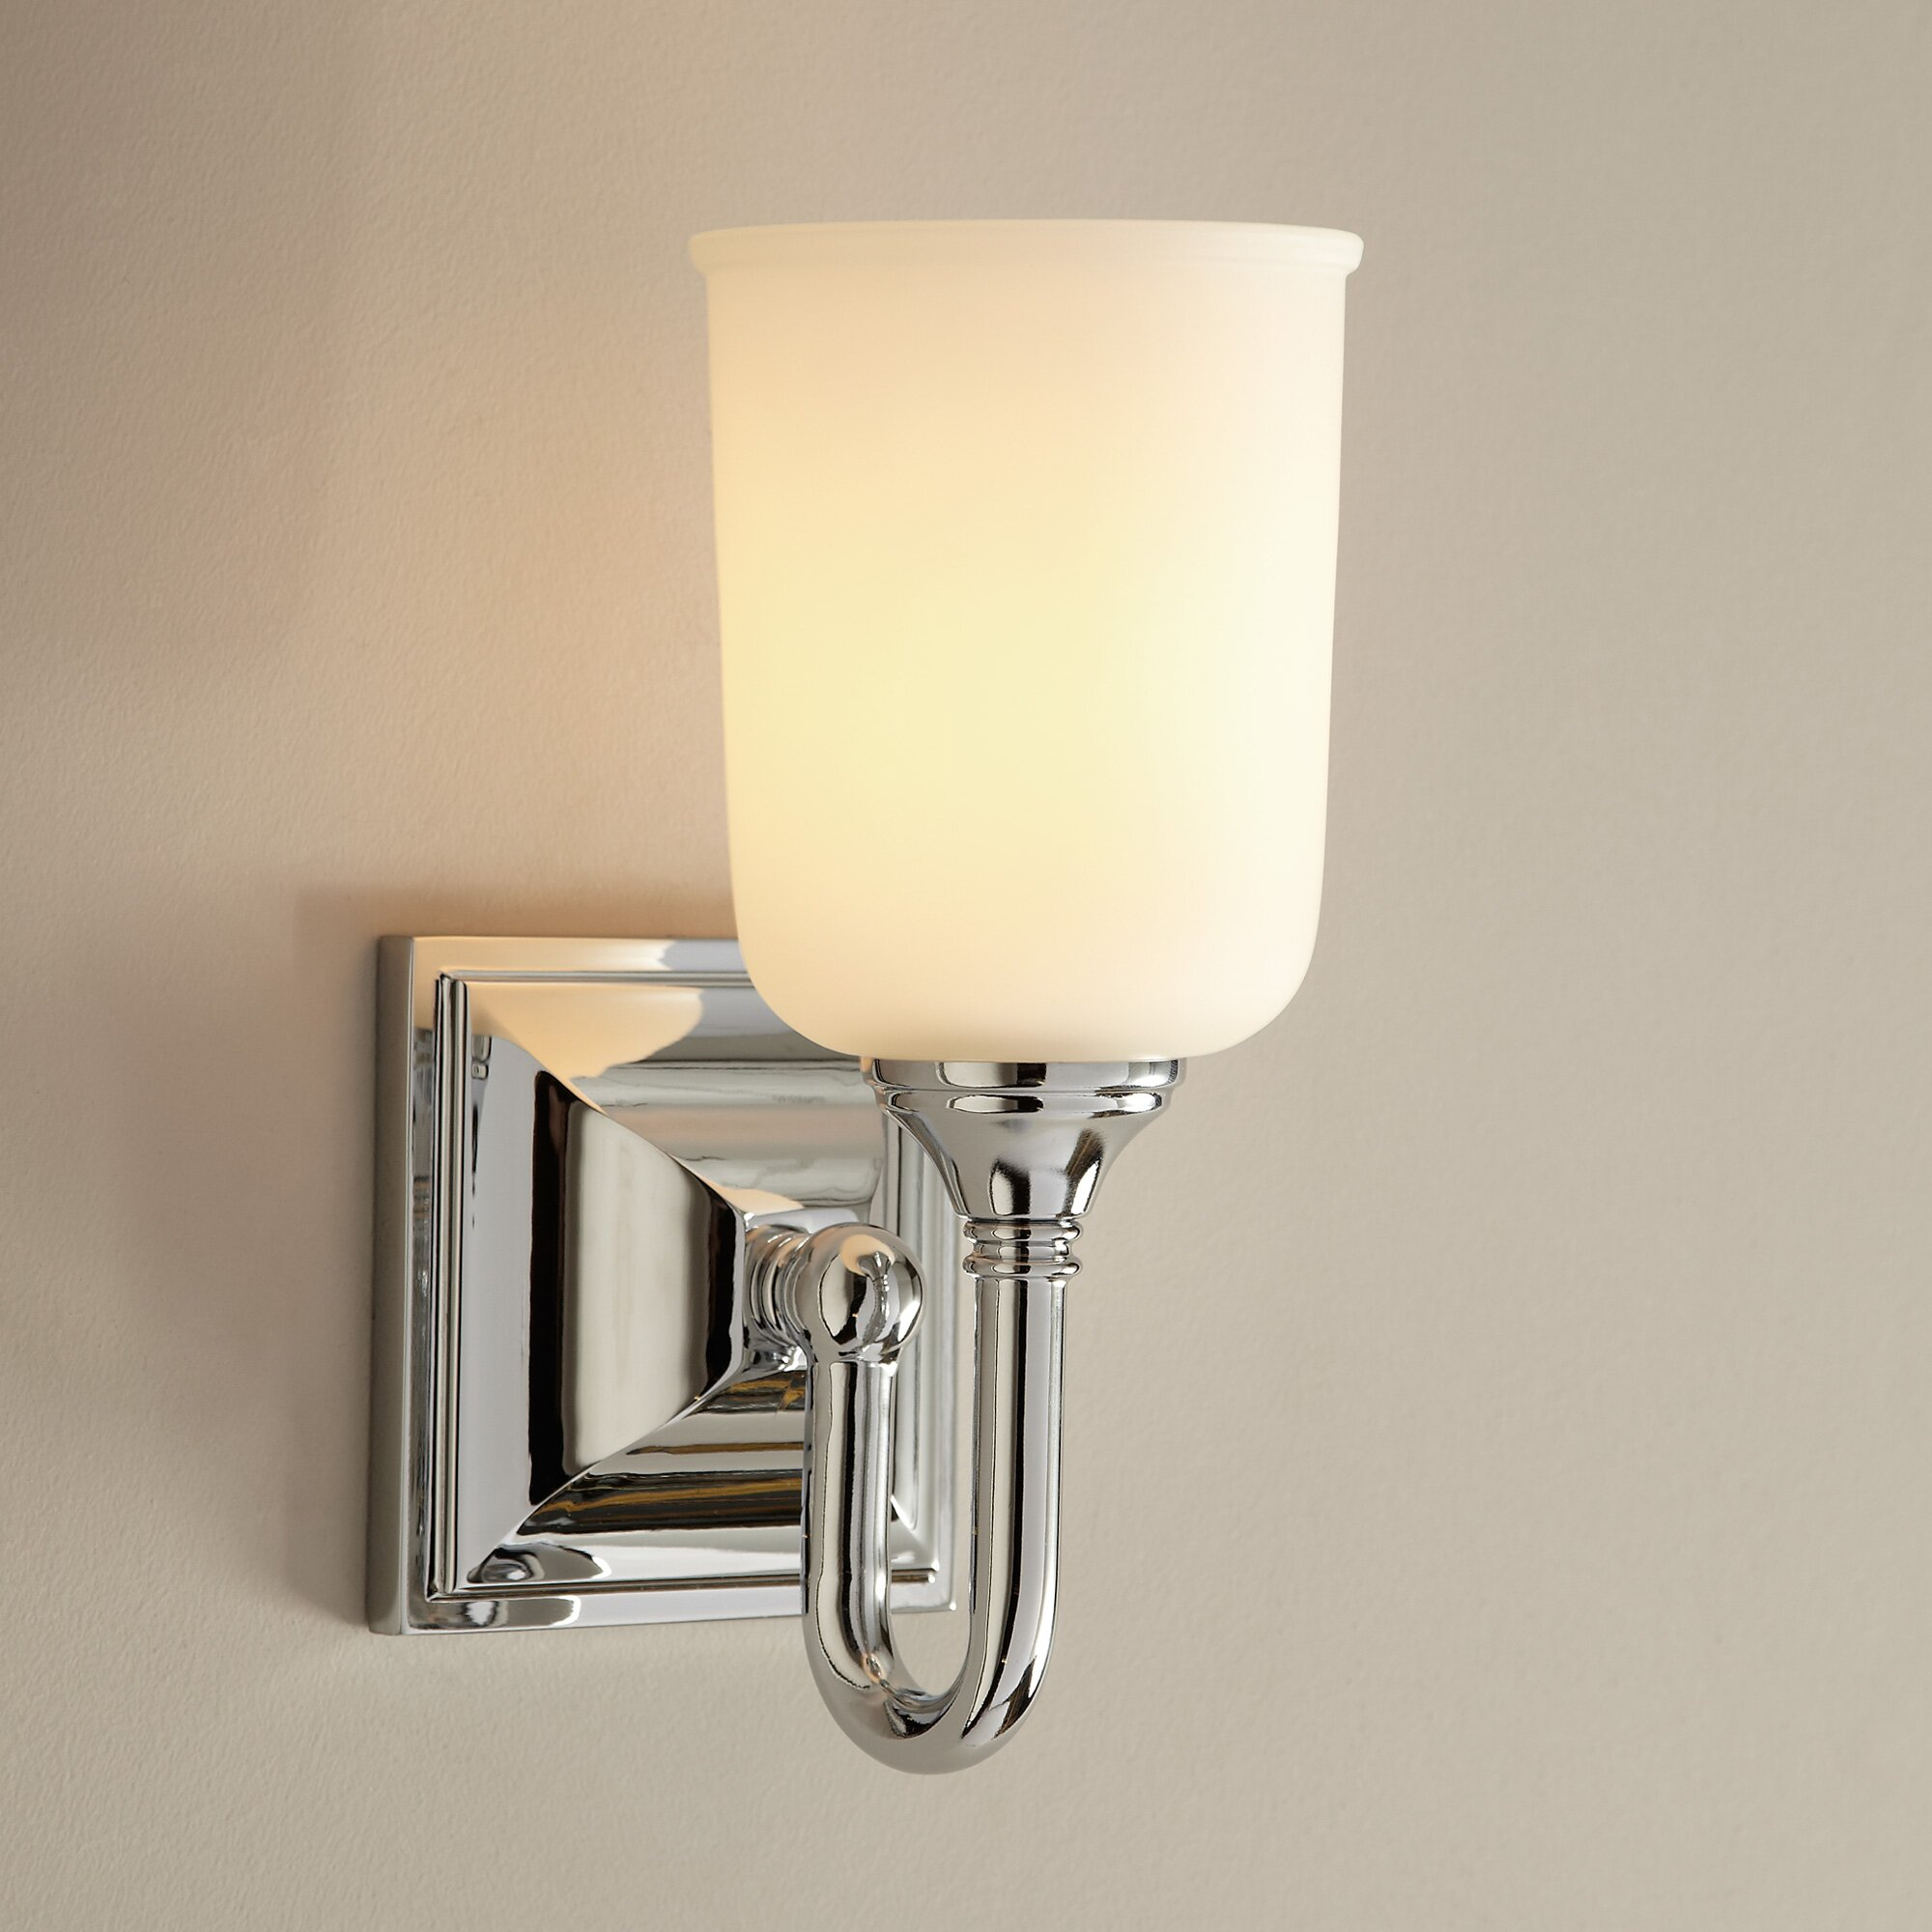 Birch Lane Beacon Wall Sconce & Reviews Wayfair